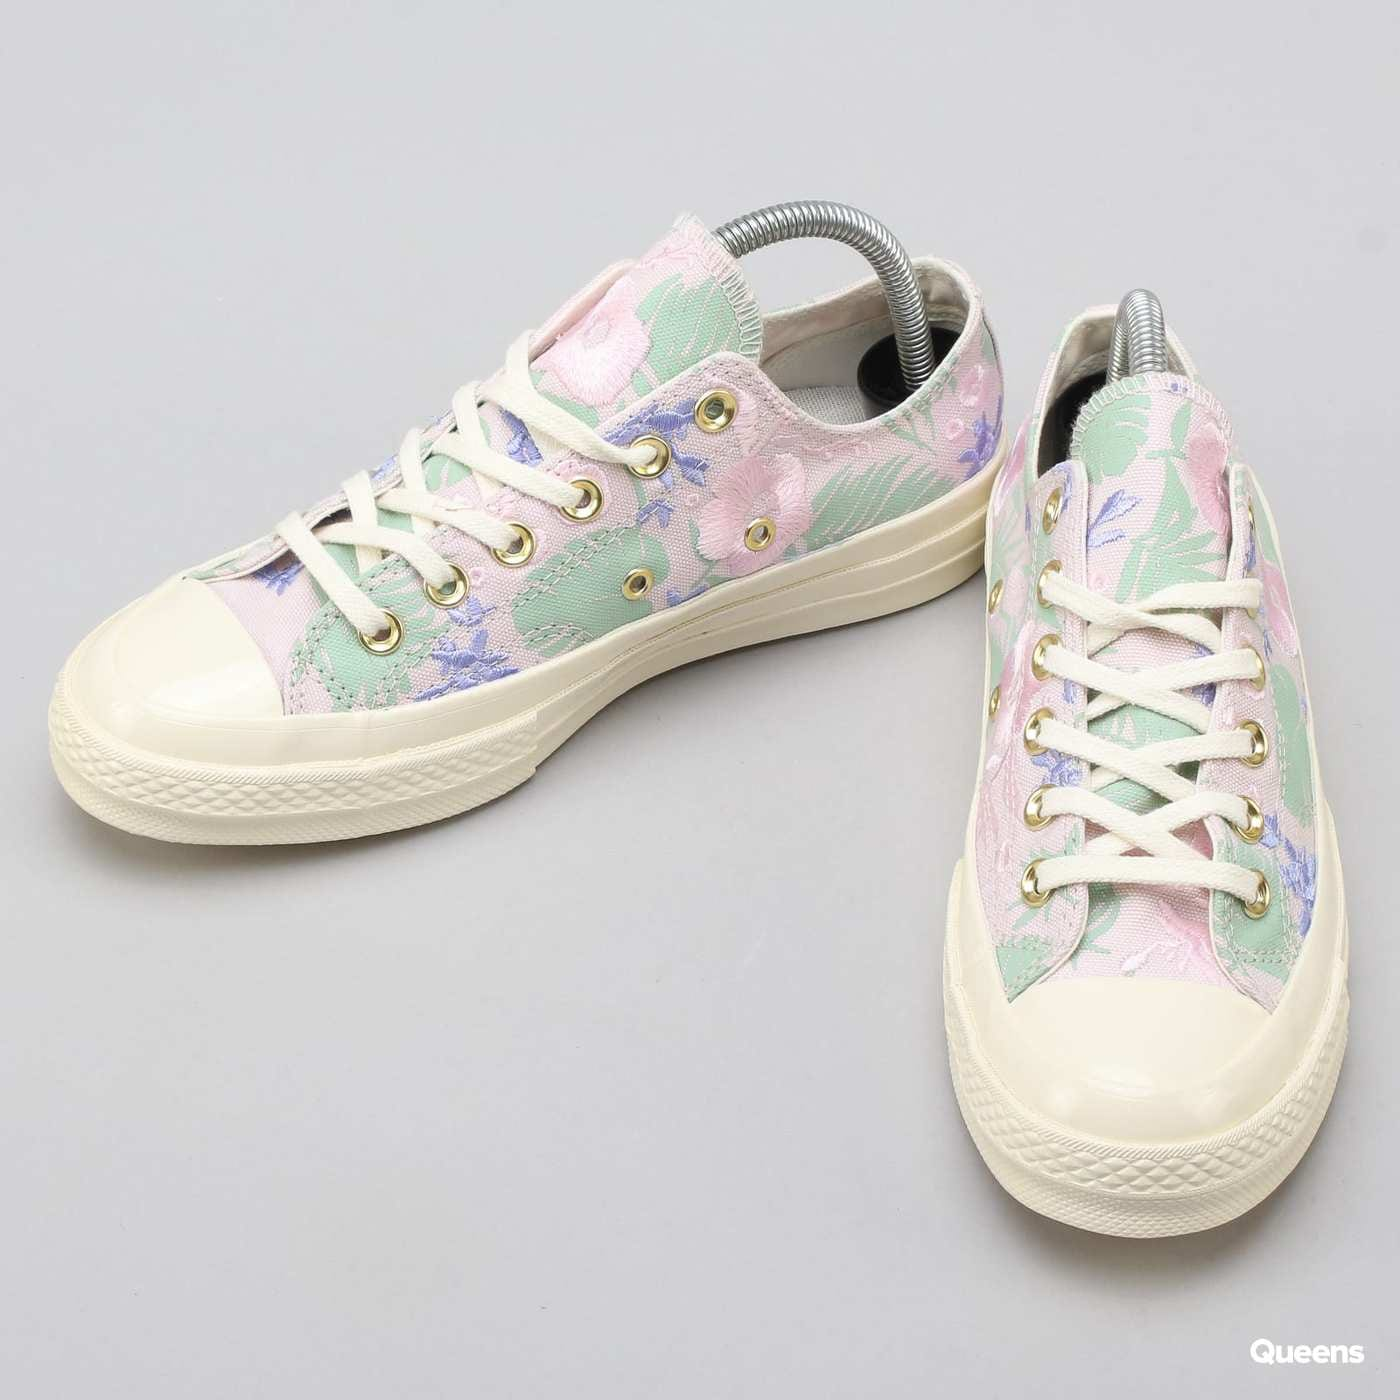 19c01f22e5bb ZvětšitZvětšitZvětšitZvětšitZvětšit. Converse Chuck Taylor All Star 1970s  OX barely rose   jaded   egret